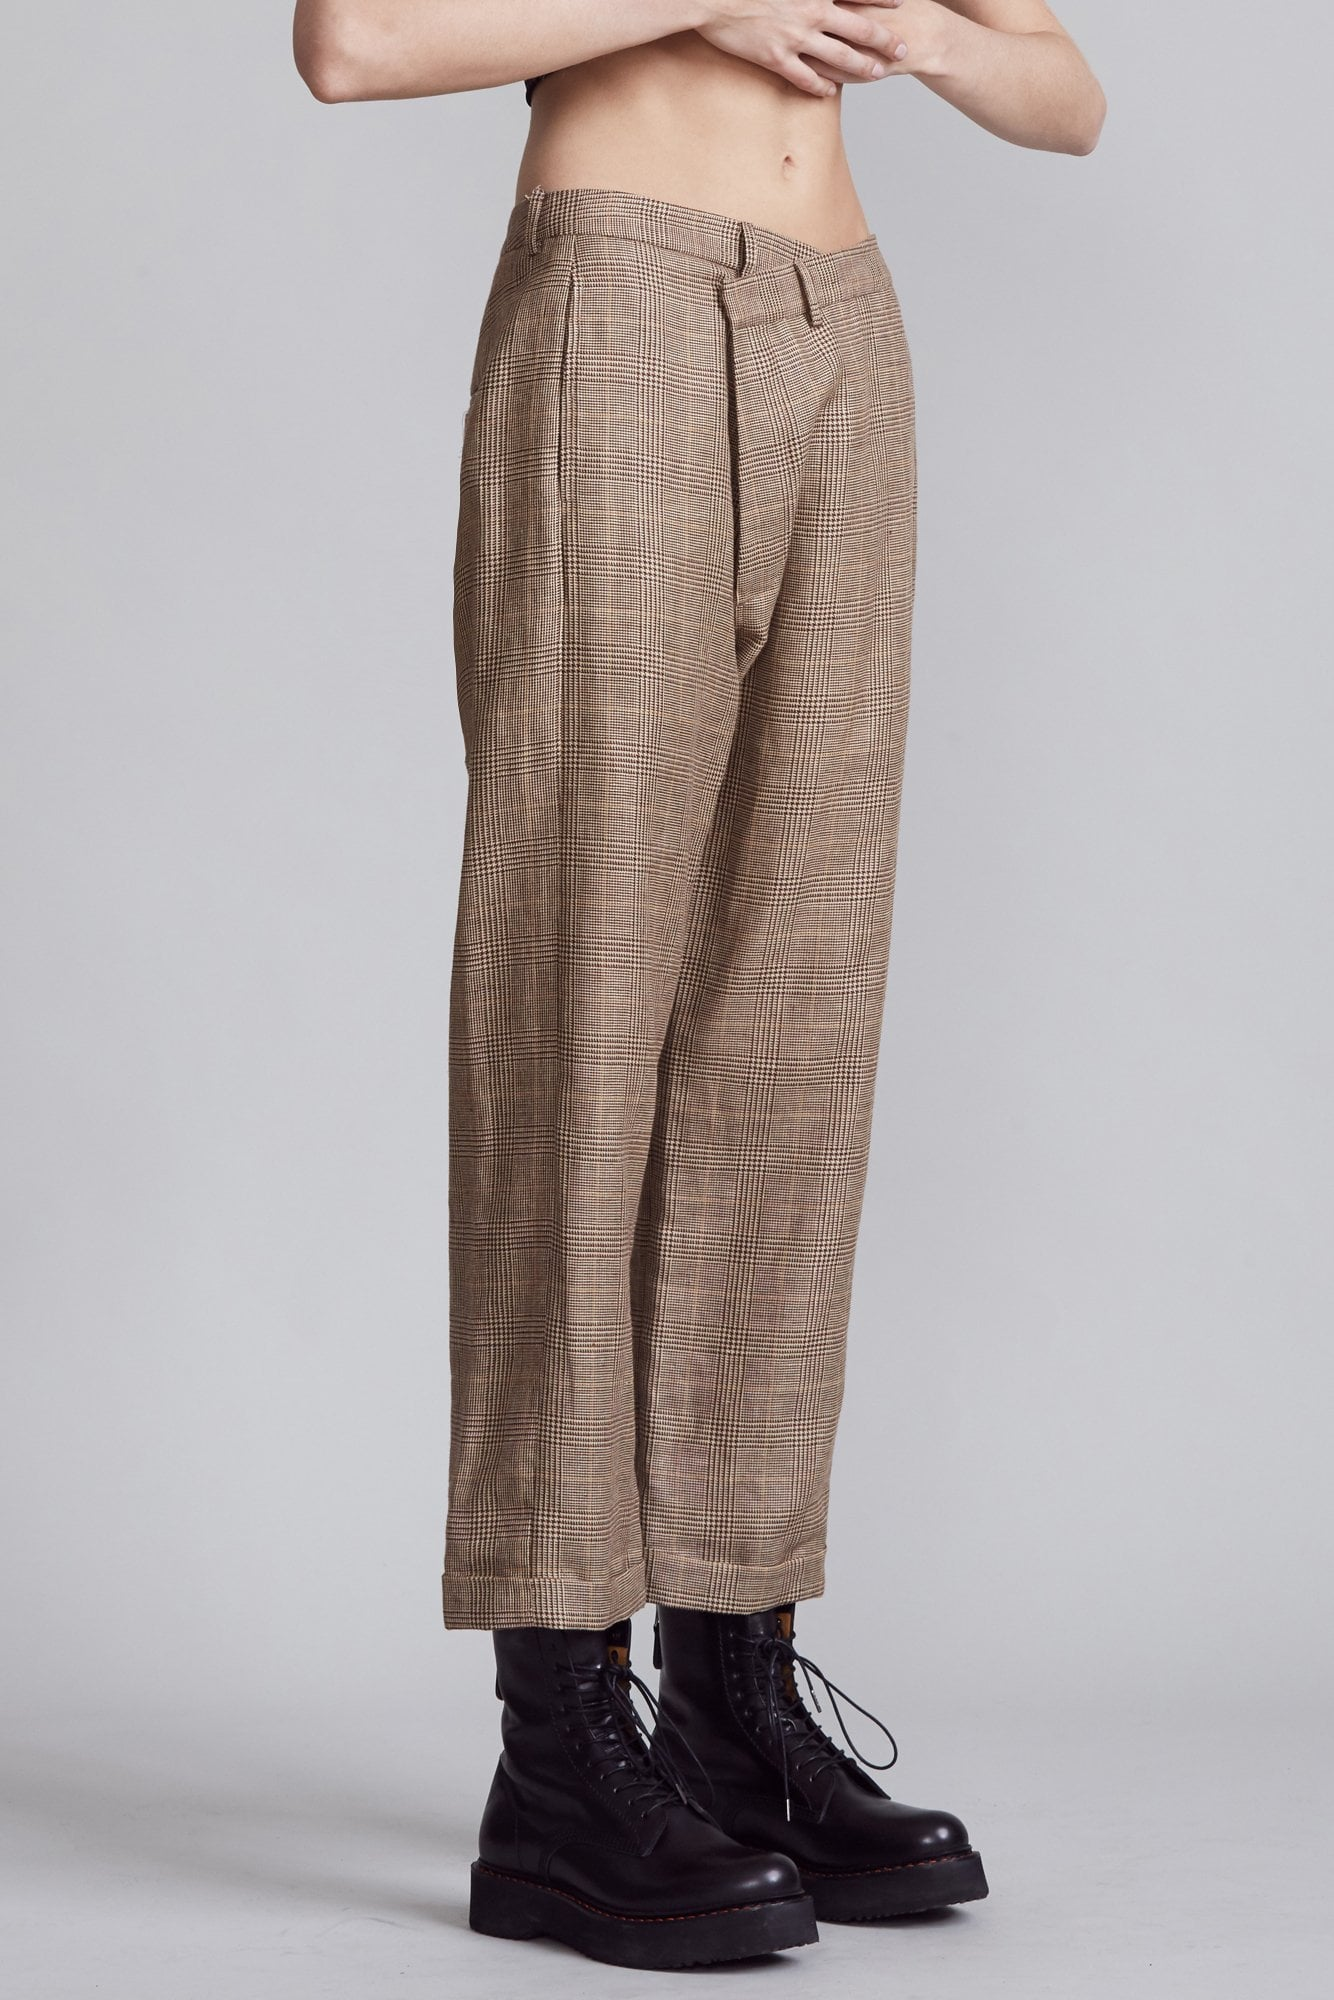 Crossover Trouser- Brown Glenplaid